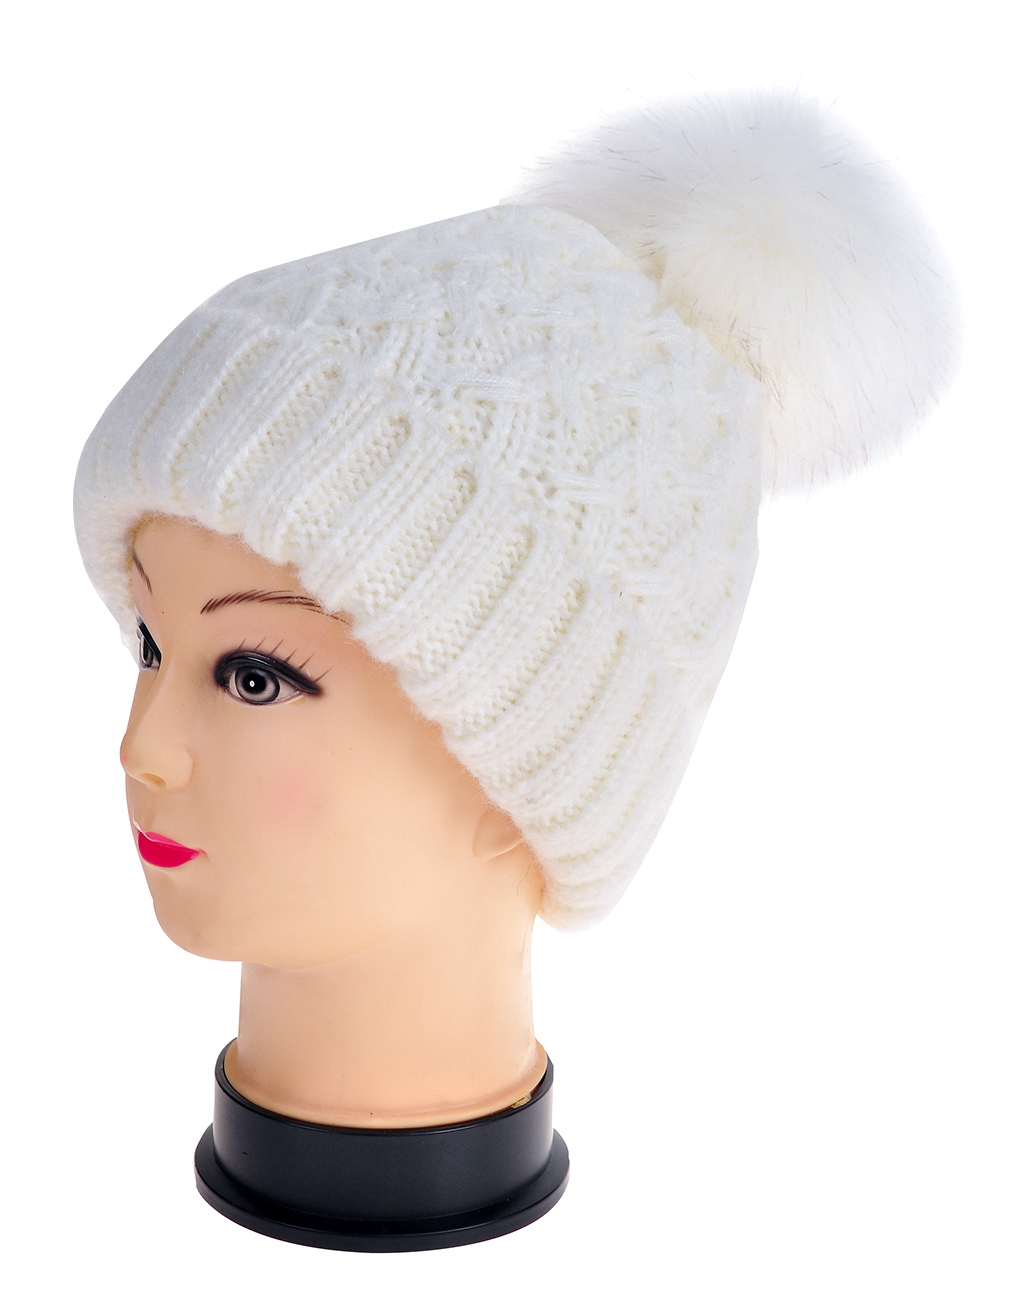 3cdae61004 Twisted Twill Pompom Beanie Hats - Luxe Wholesale